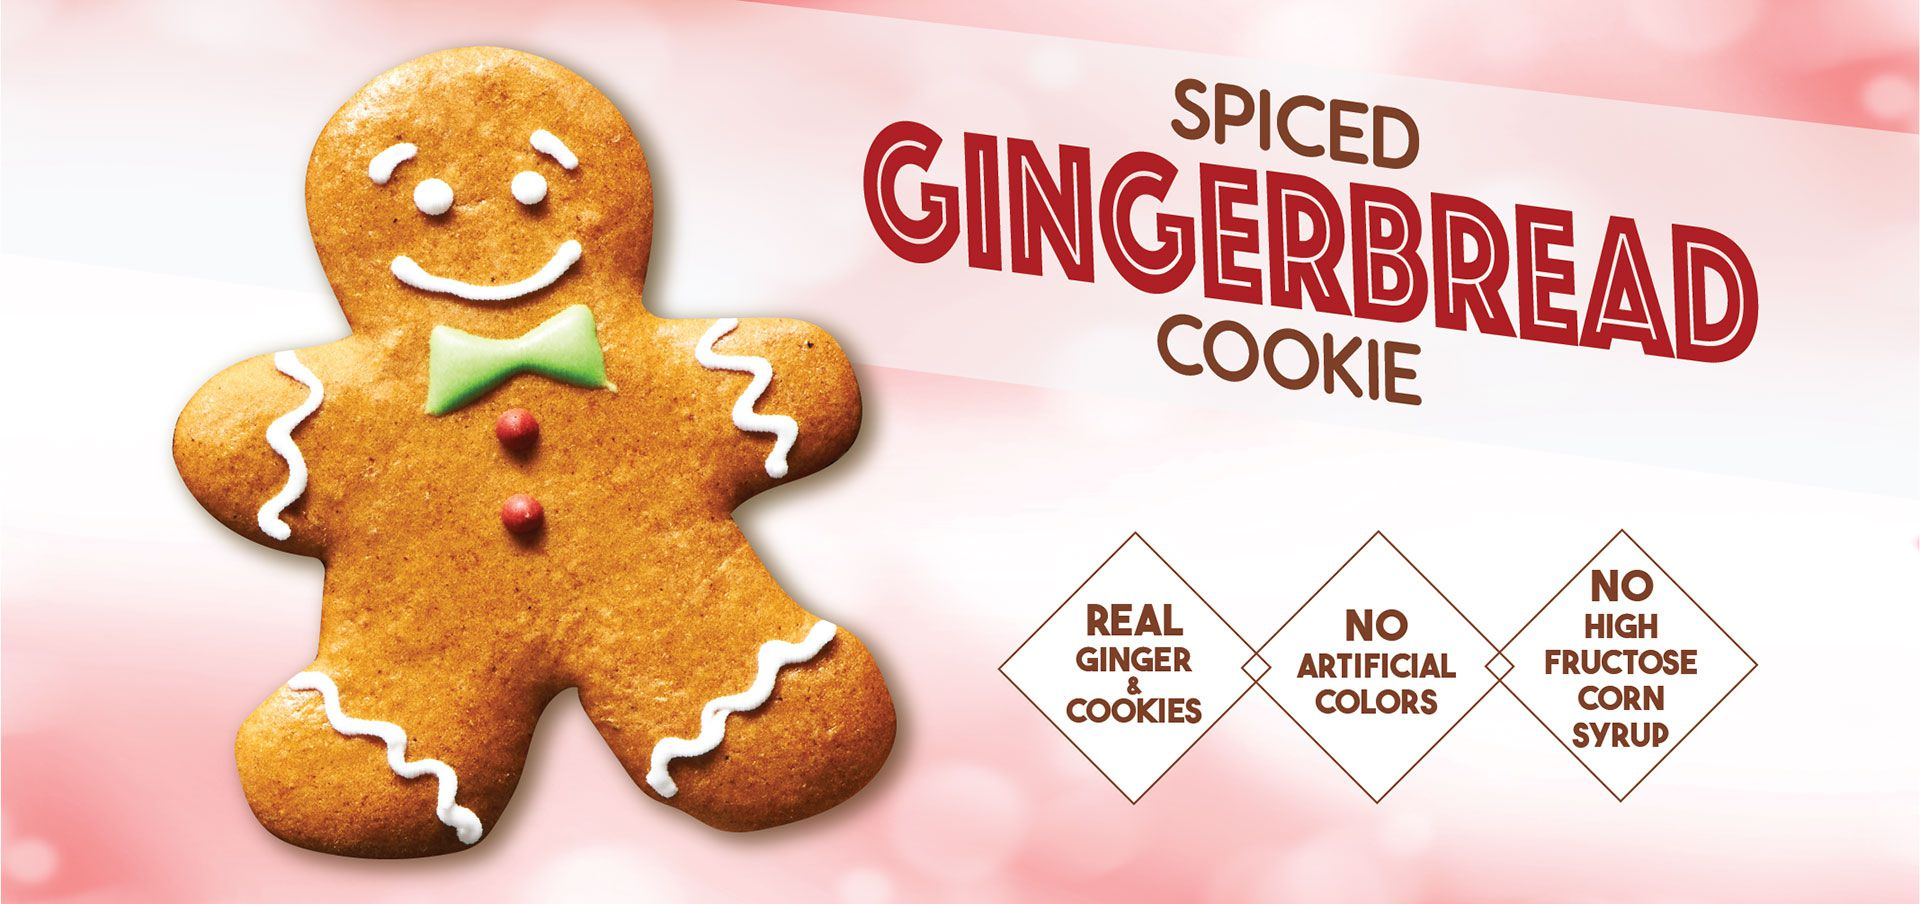 spiced gingerbread cookie label image